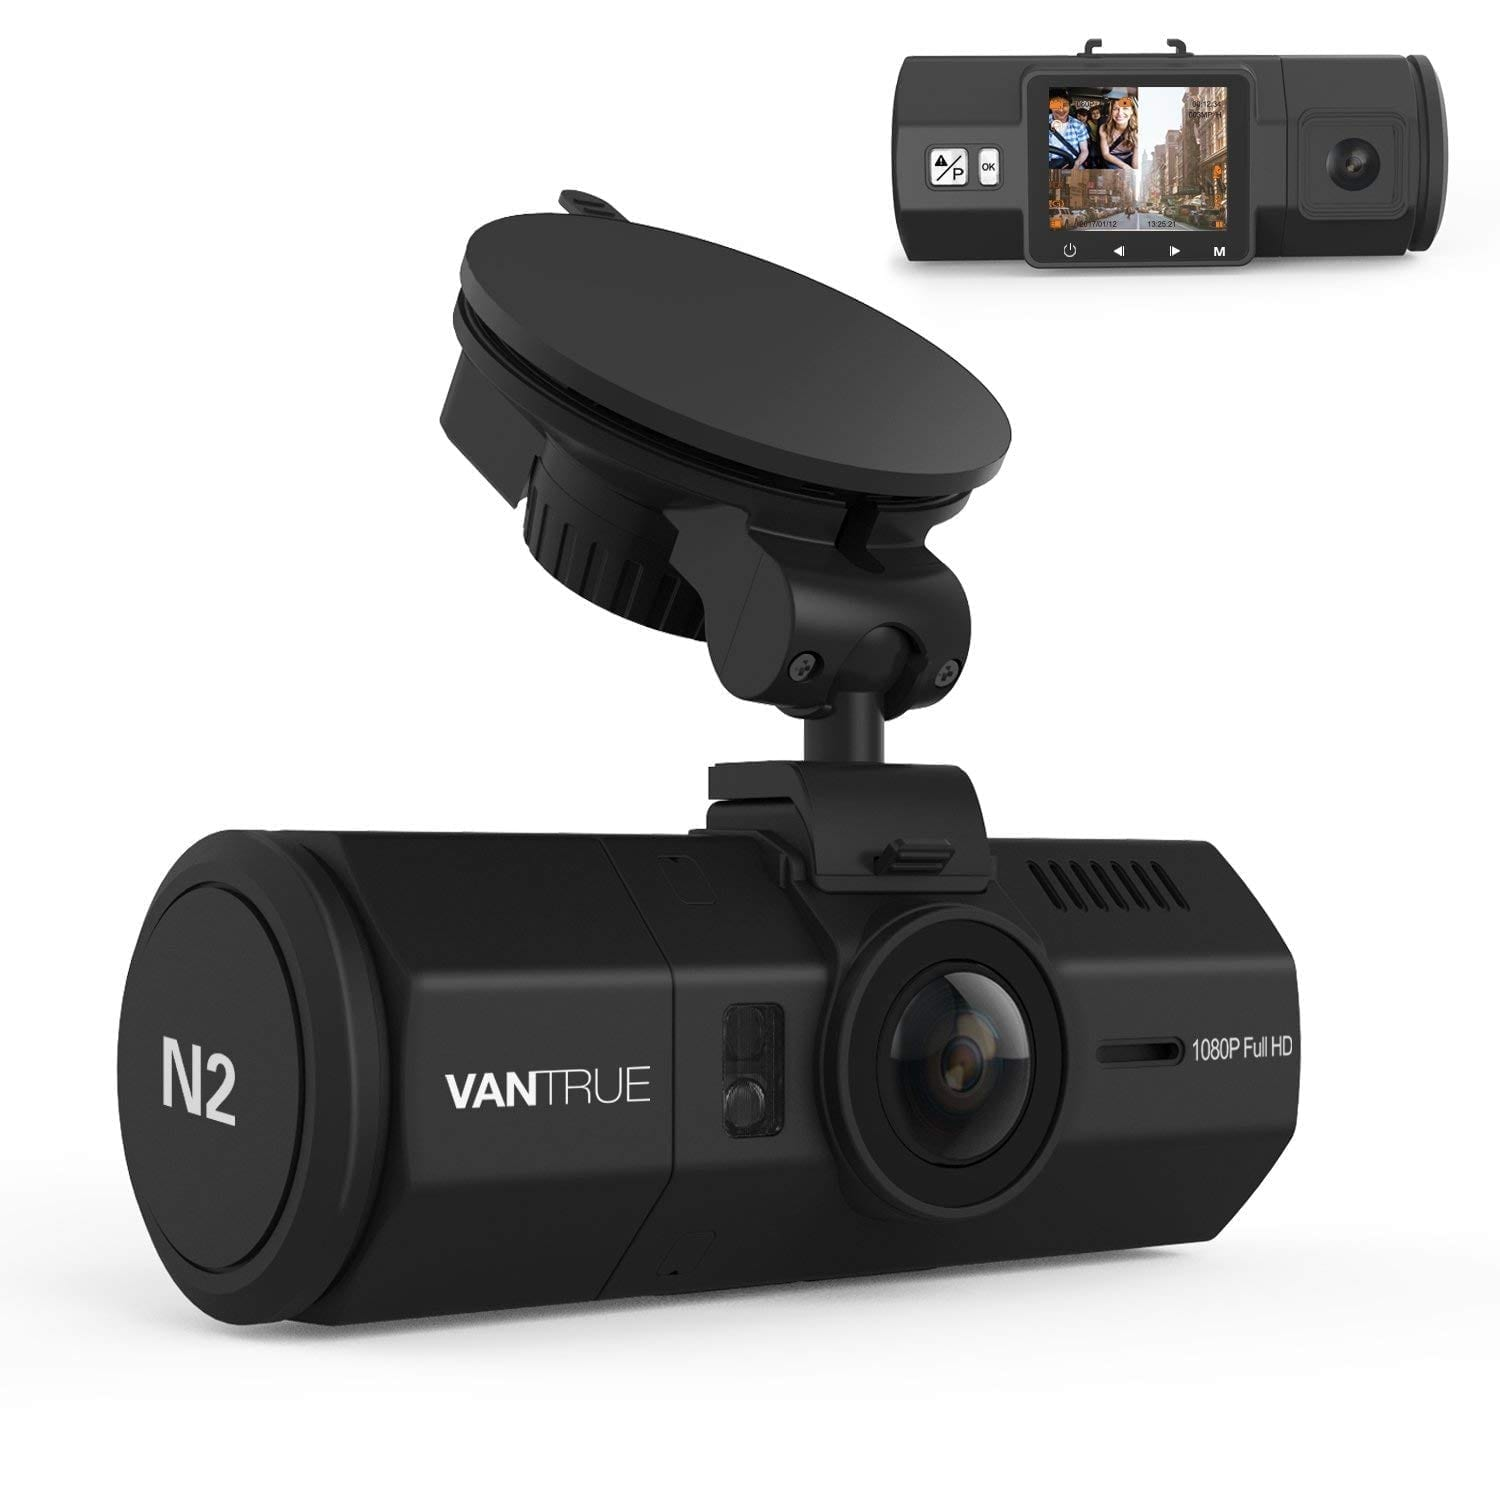 "Vantrue N2 Uber & Lyft dual dash cam with 1080P resolution, 1.5"" screen, and near 360o wide angle recording."